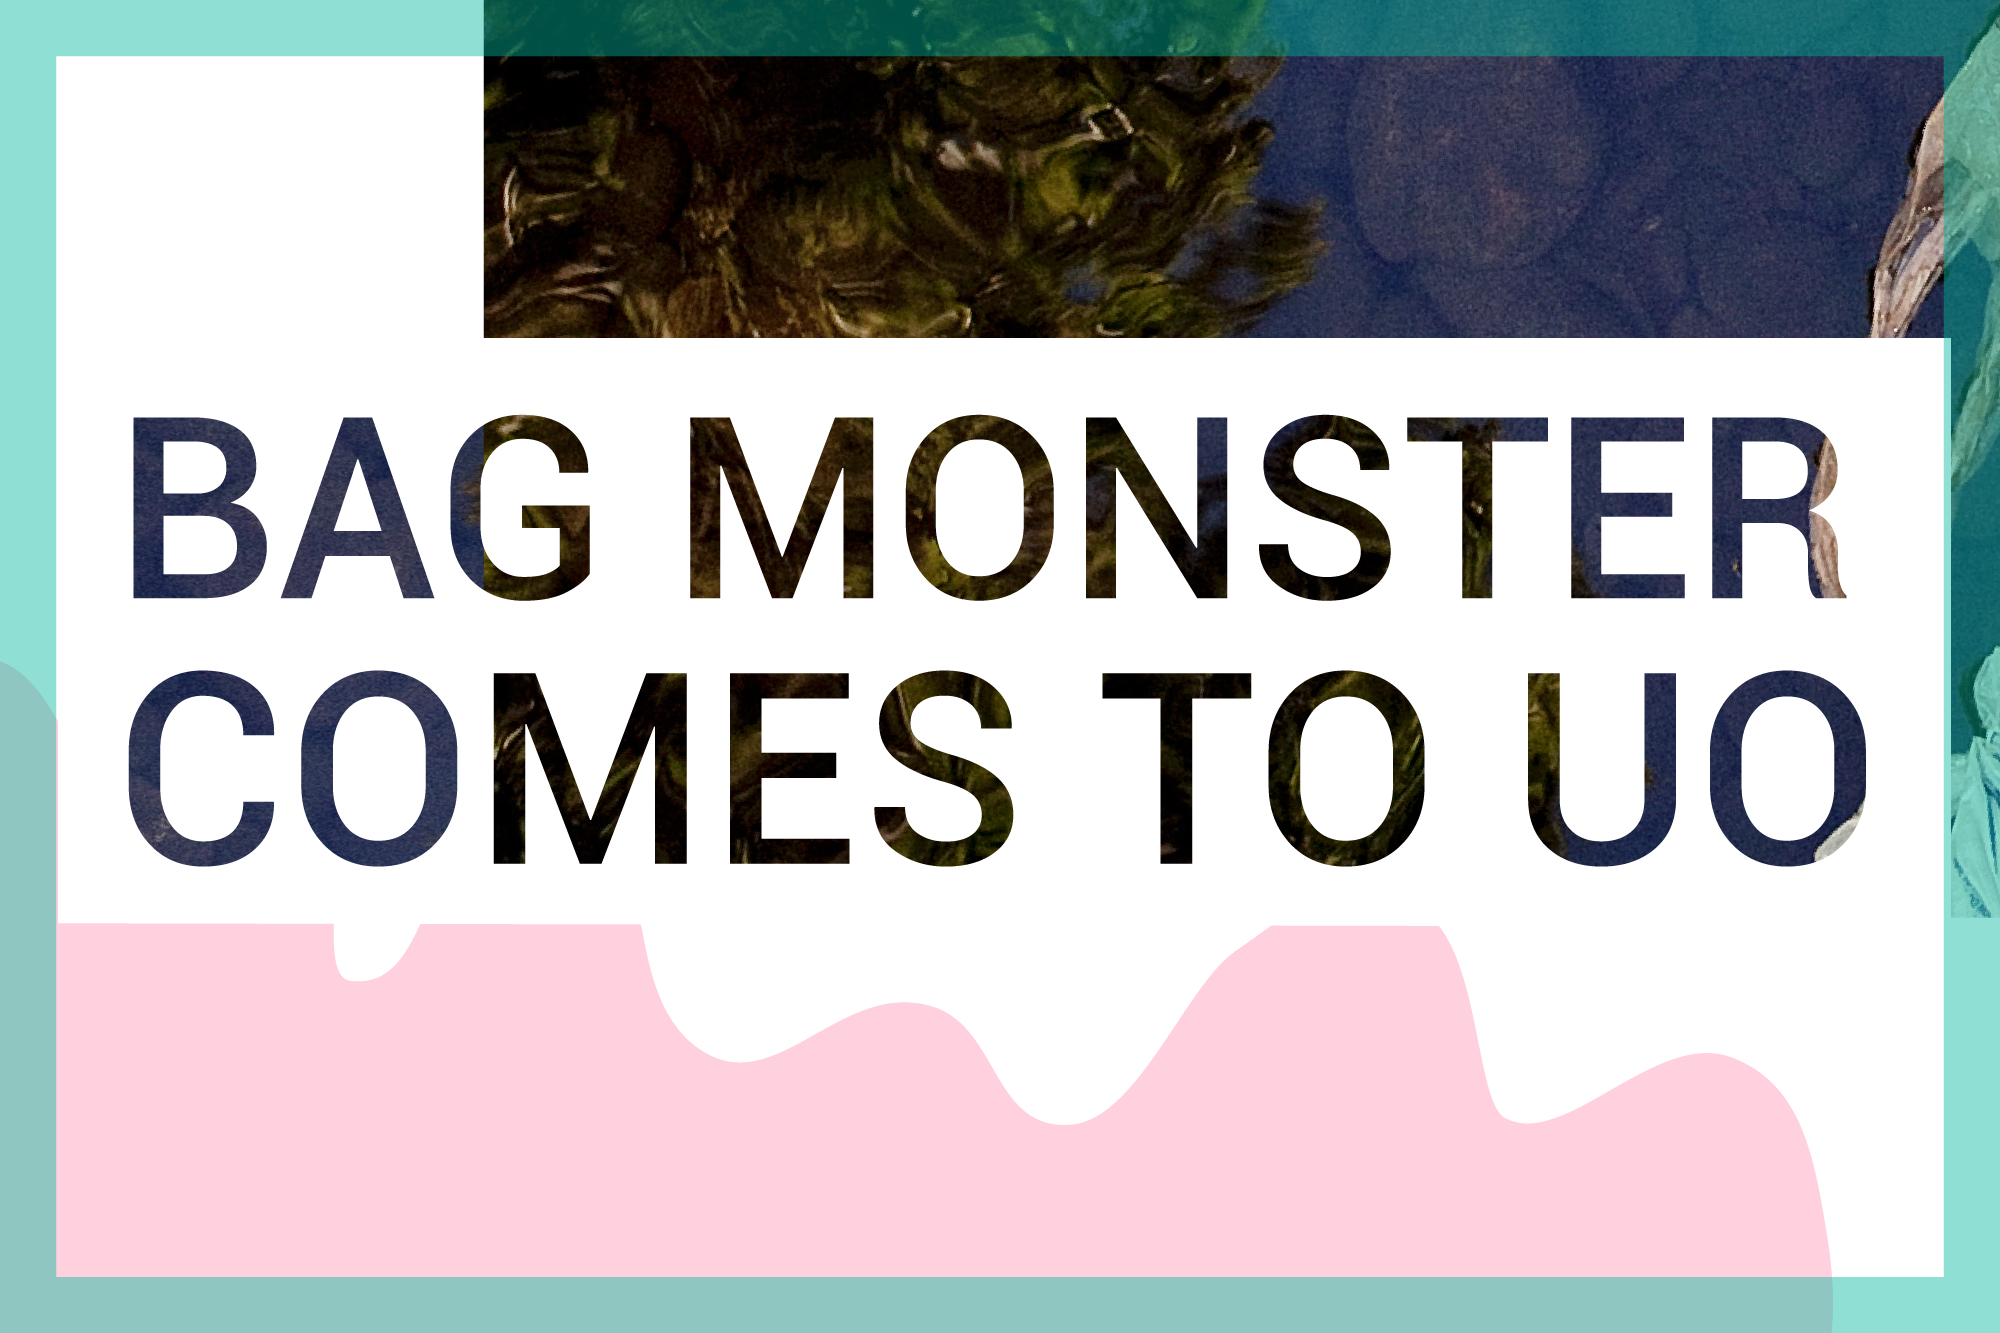 Bag Monster Comes to UO